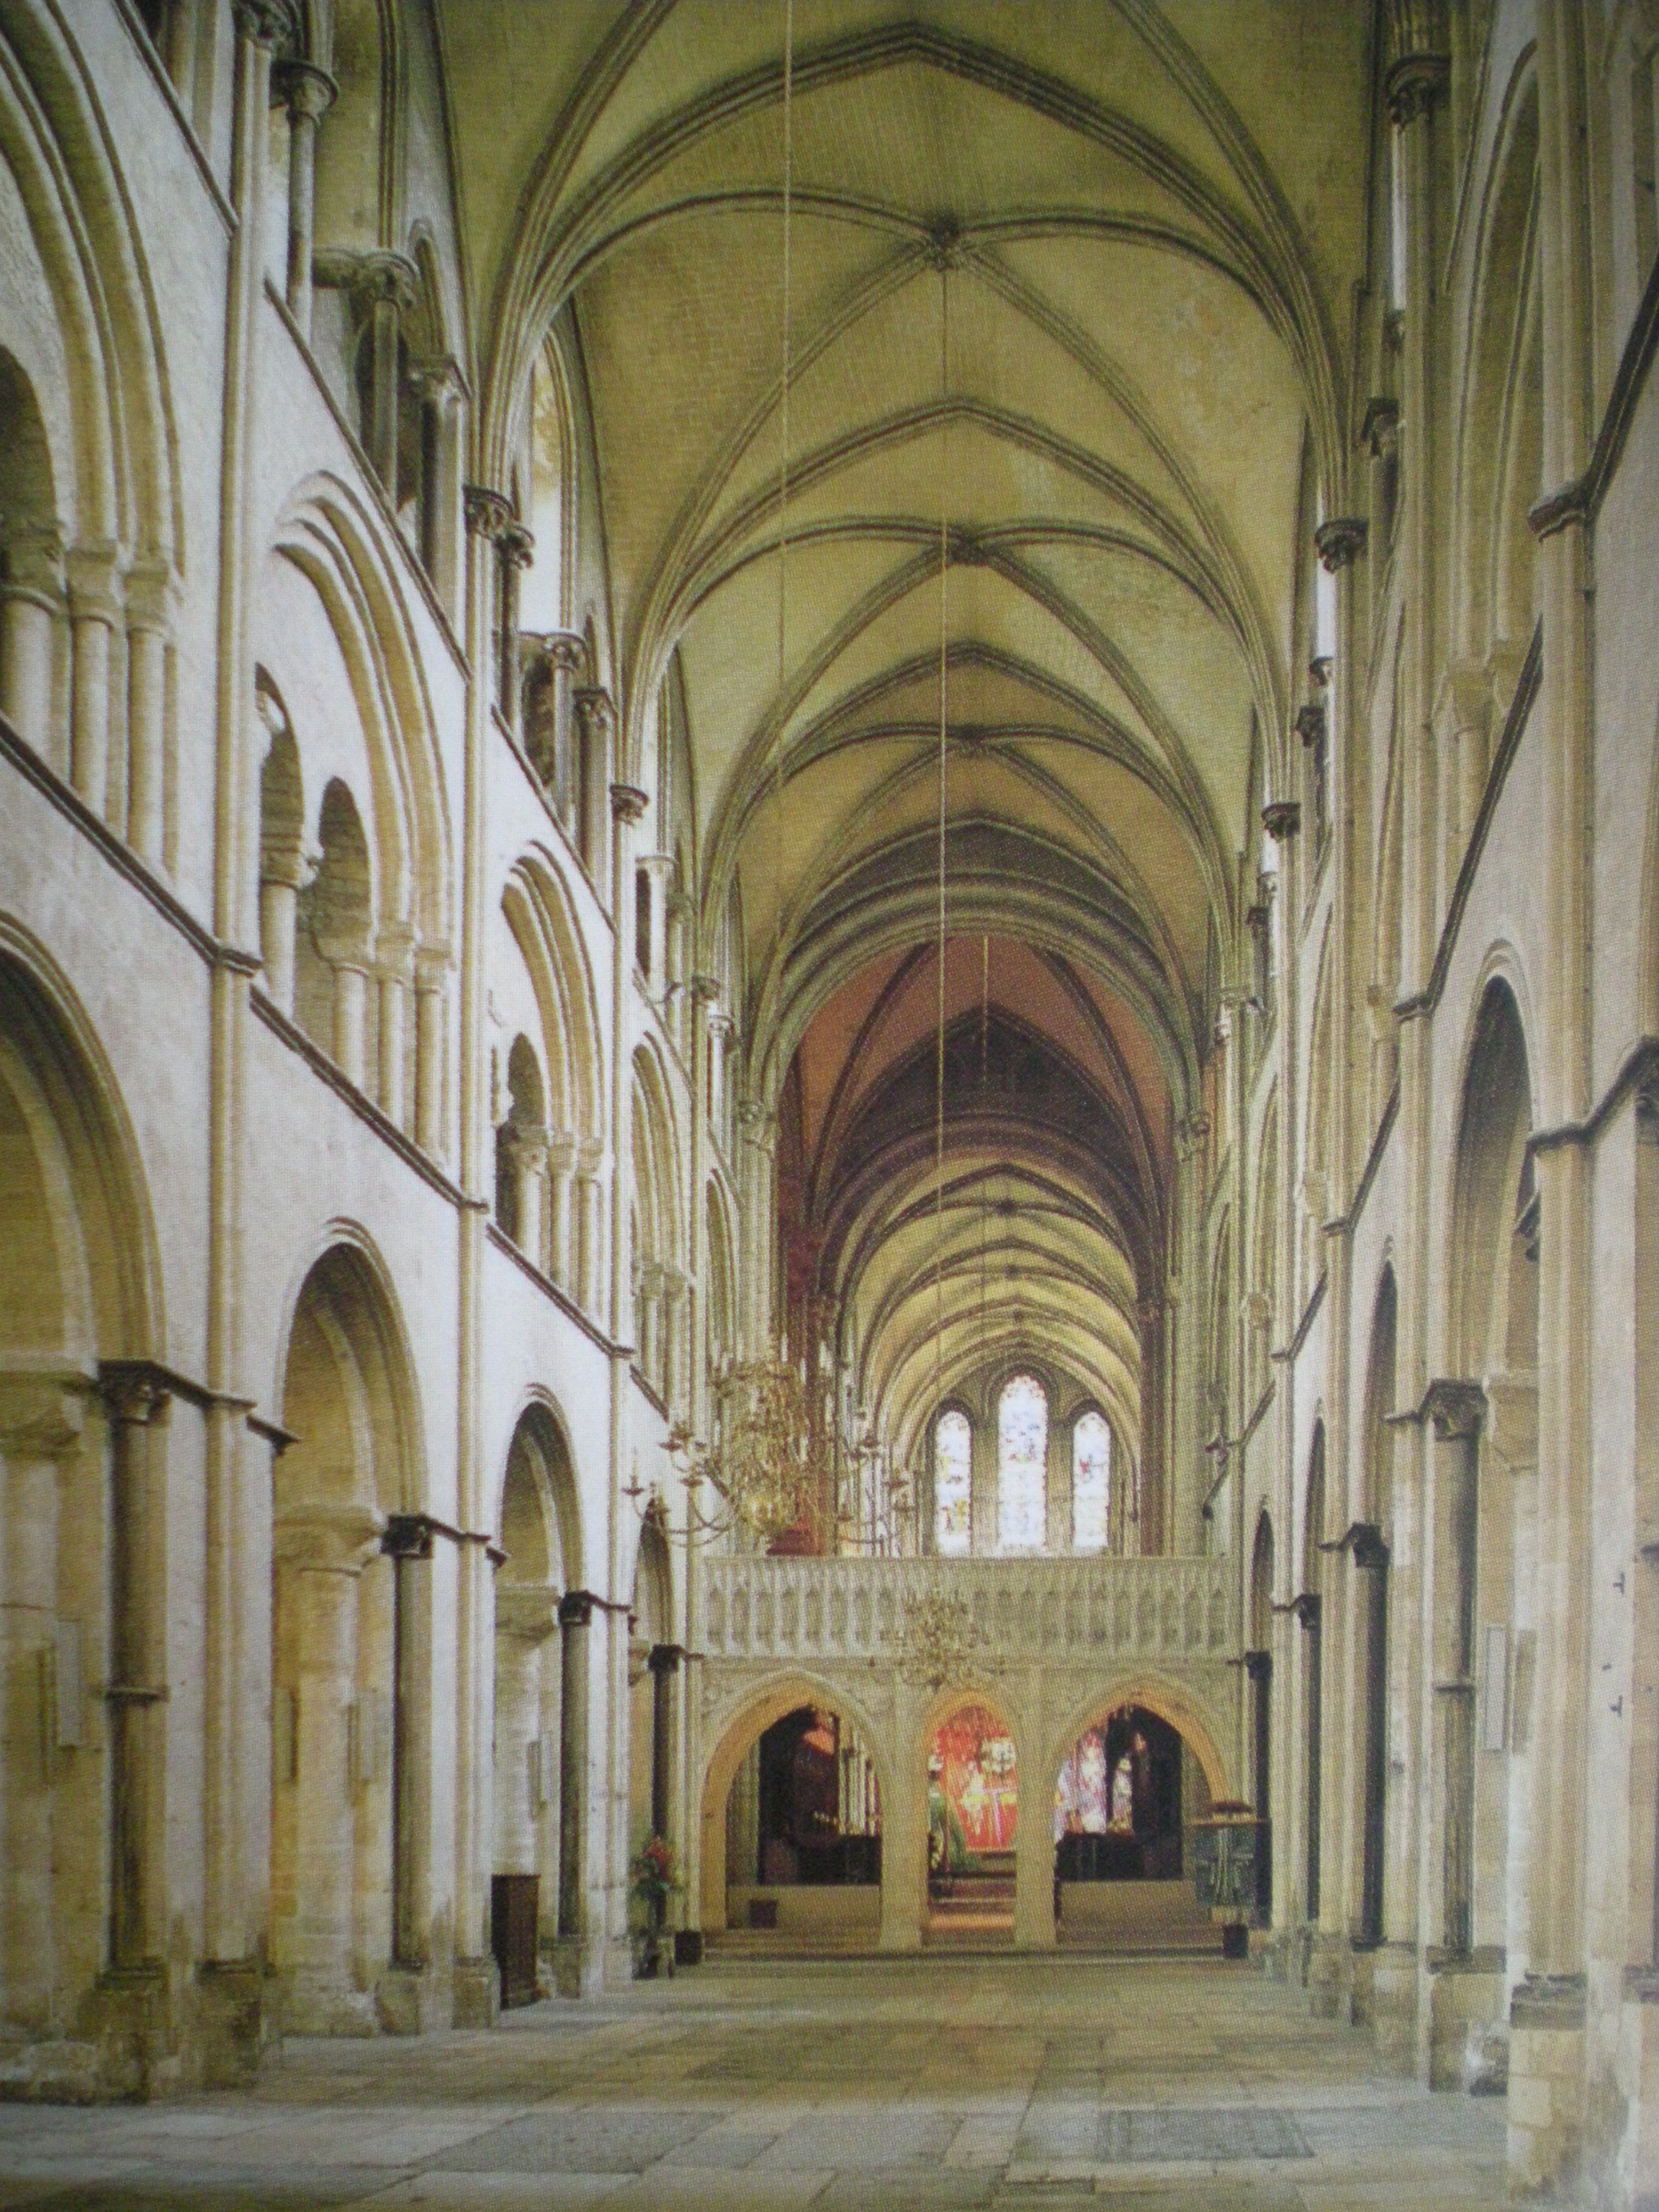 ripon latin singles Ripon cathedral, ripon friday 20th jul  speed dating singles event - harrogate - ages 35-55  harrogate events, clubs,.